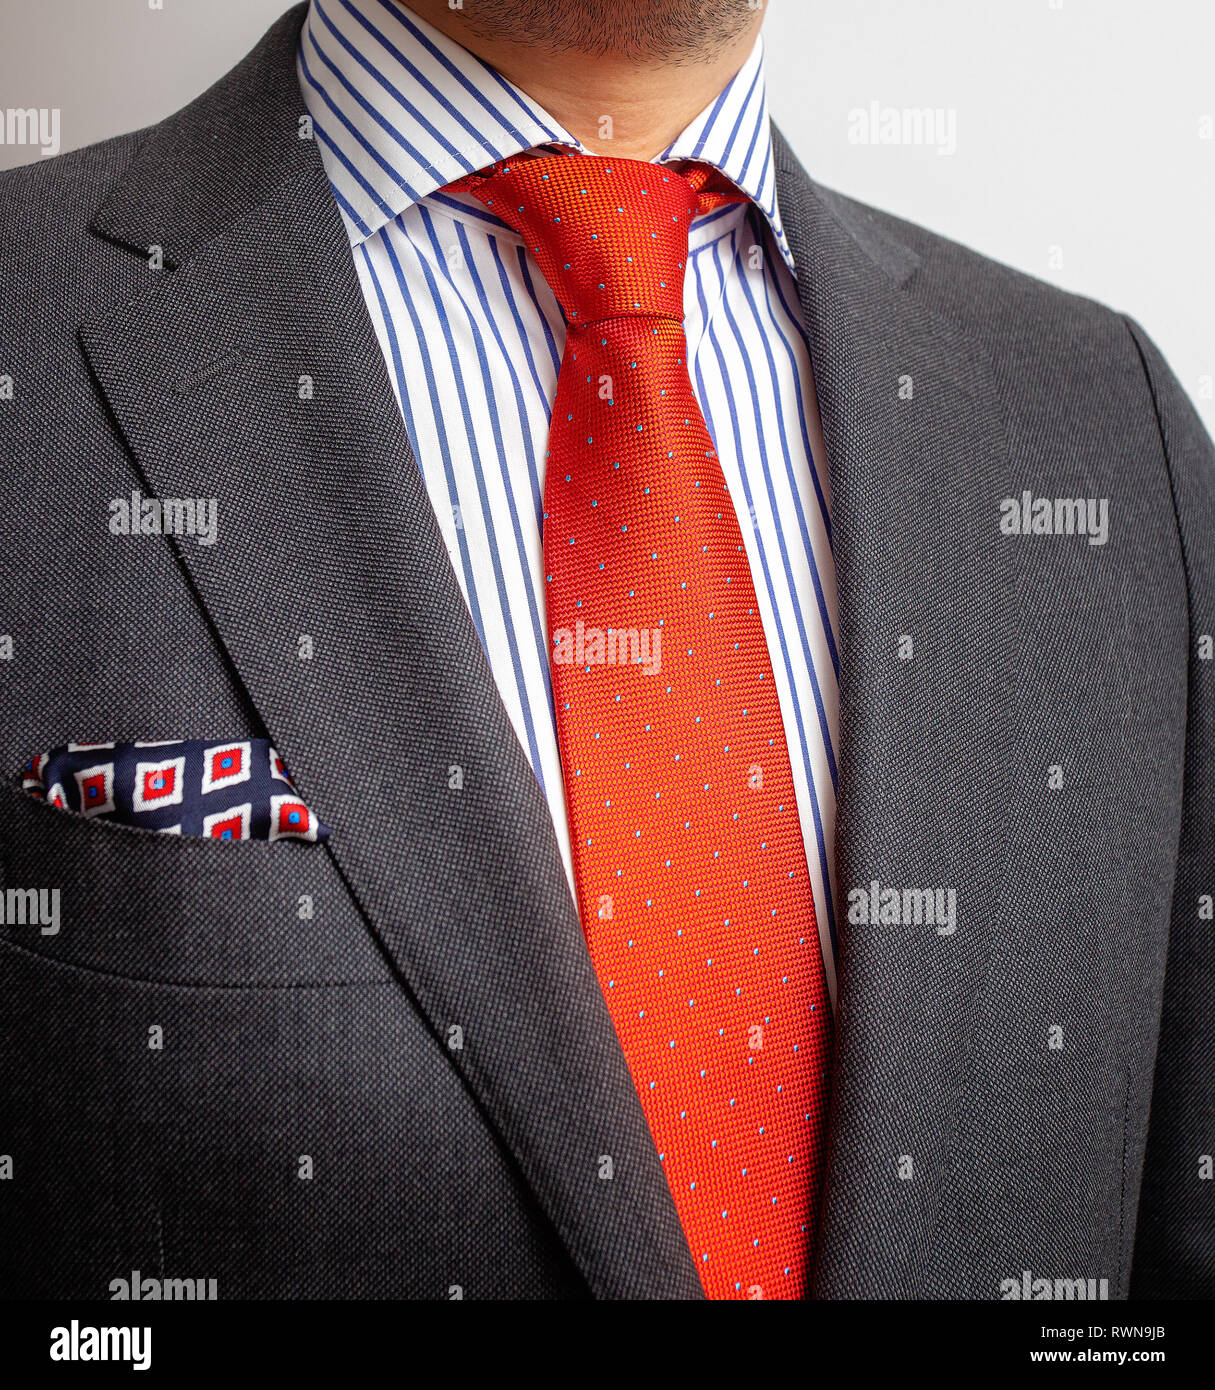 bf4ddc37e1c5 Business Power, Detail closeup - jacket men's, shirt with a orange tie and pocket  square